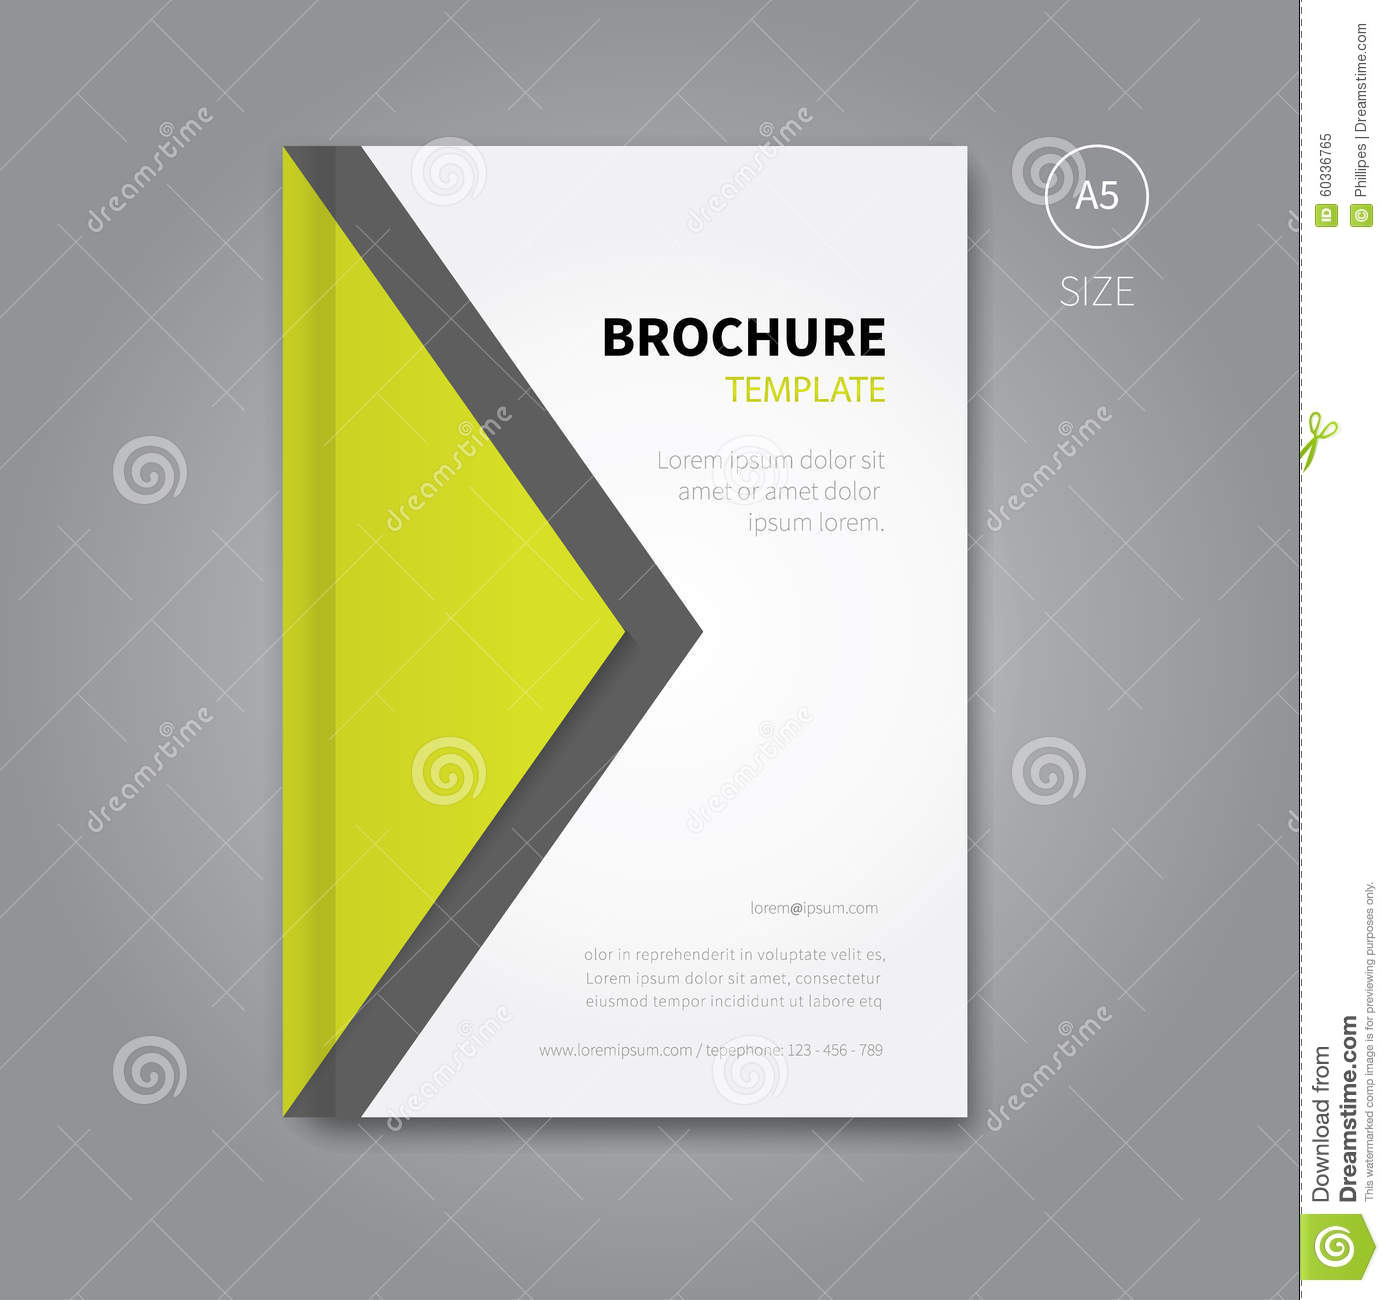 Abstract brochure cover design background stock vector for Brochure cover designs